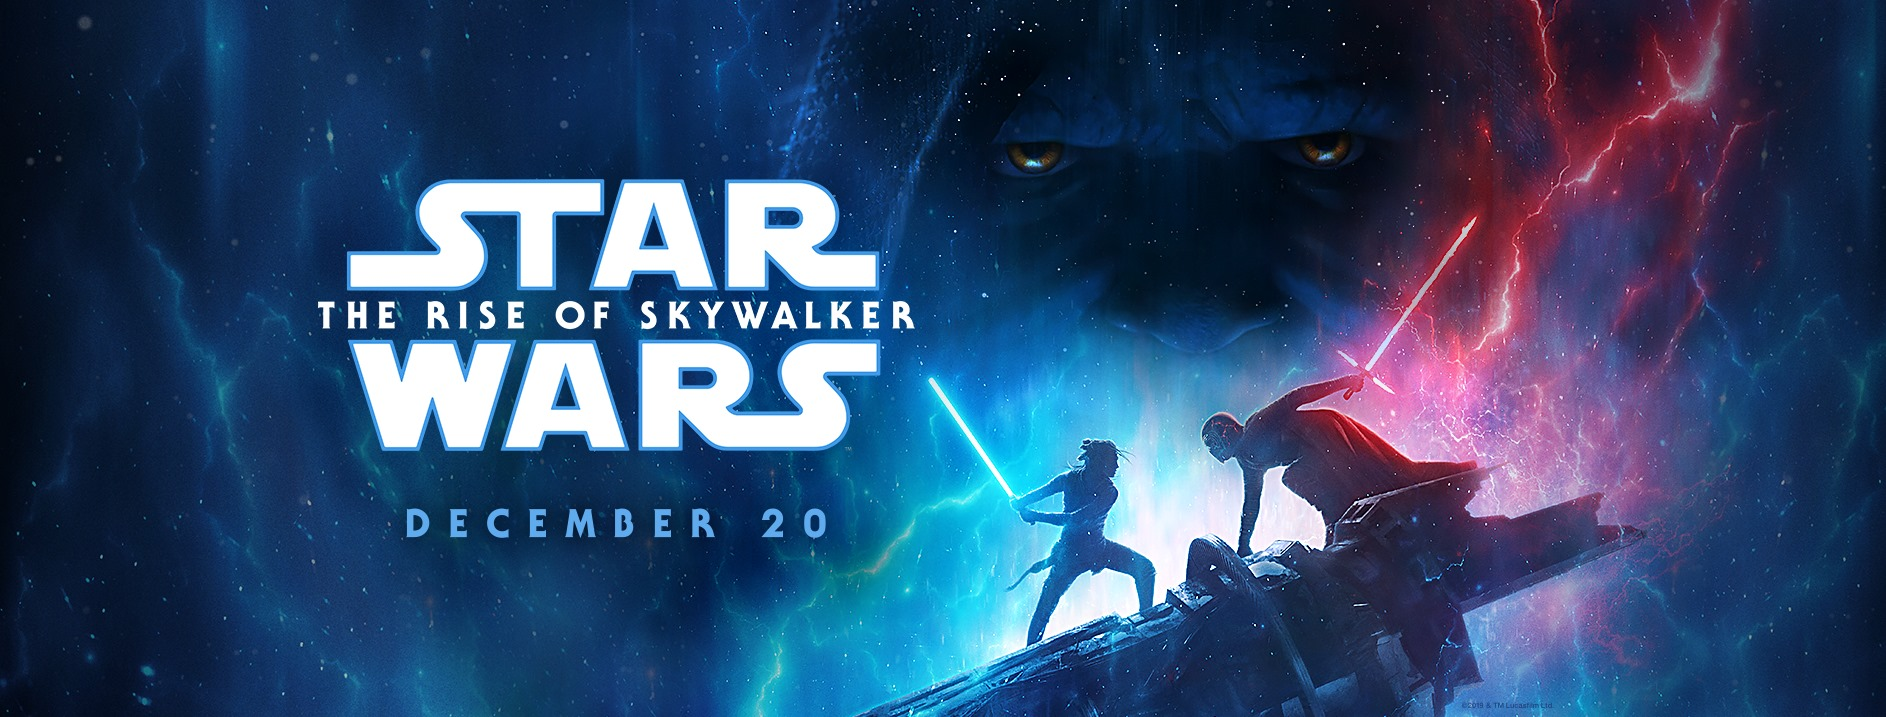 Star Wars The Rise Of Skywalker Spoilers Palpatine Coming Back